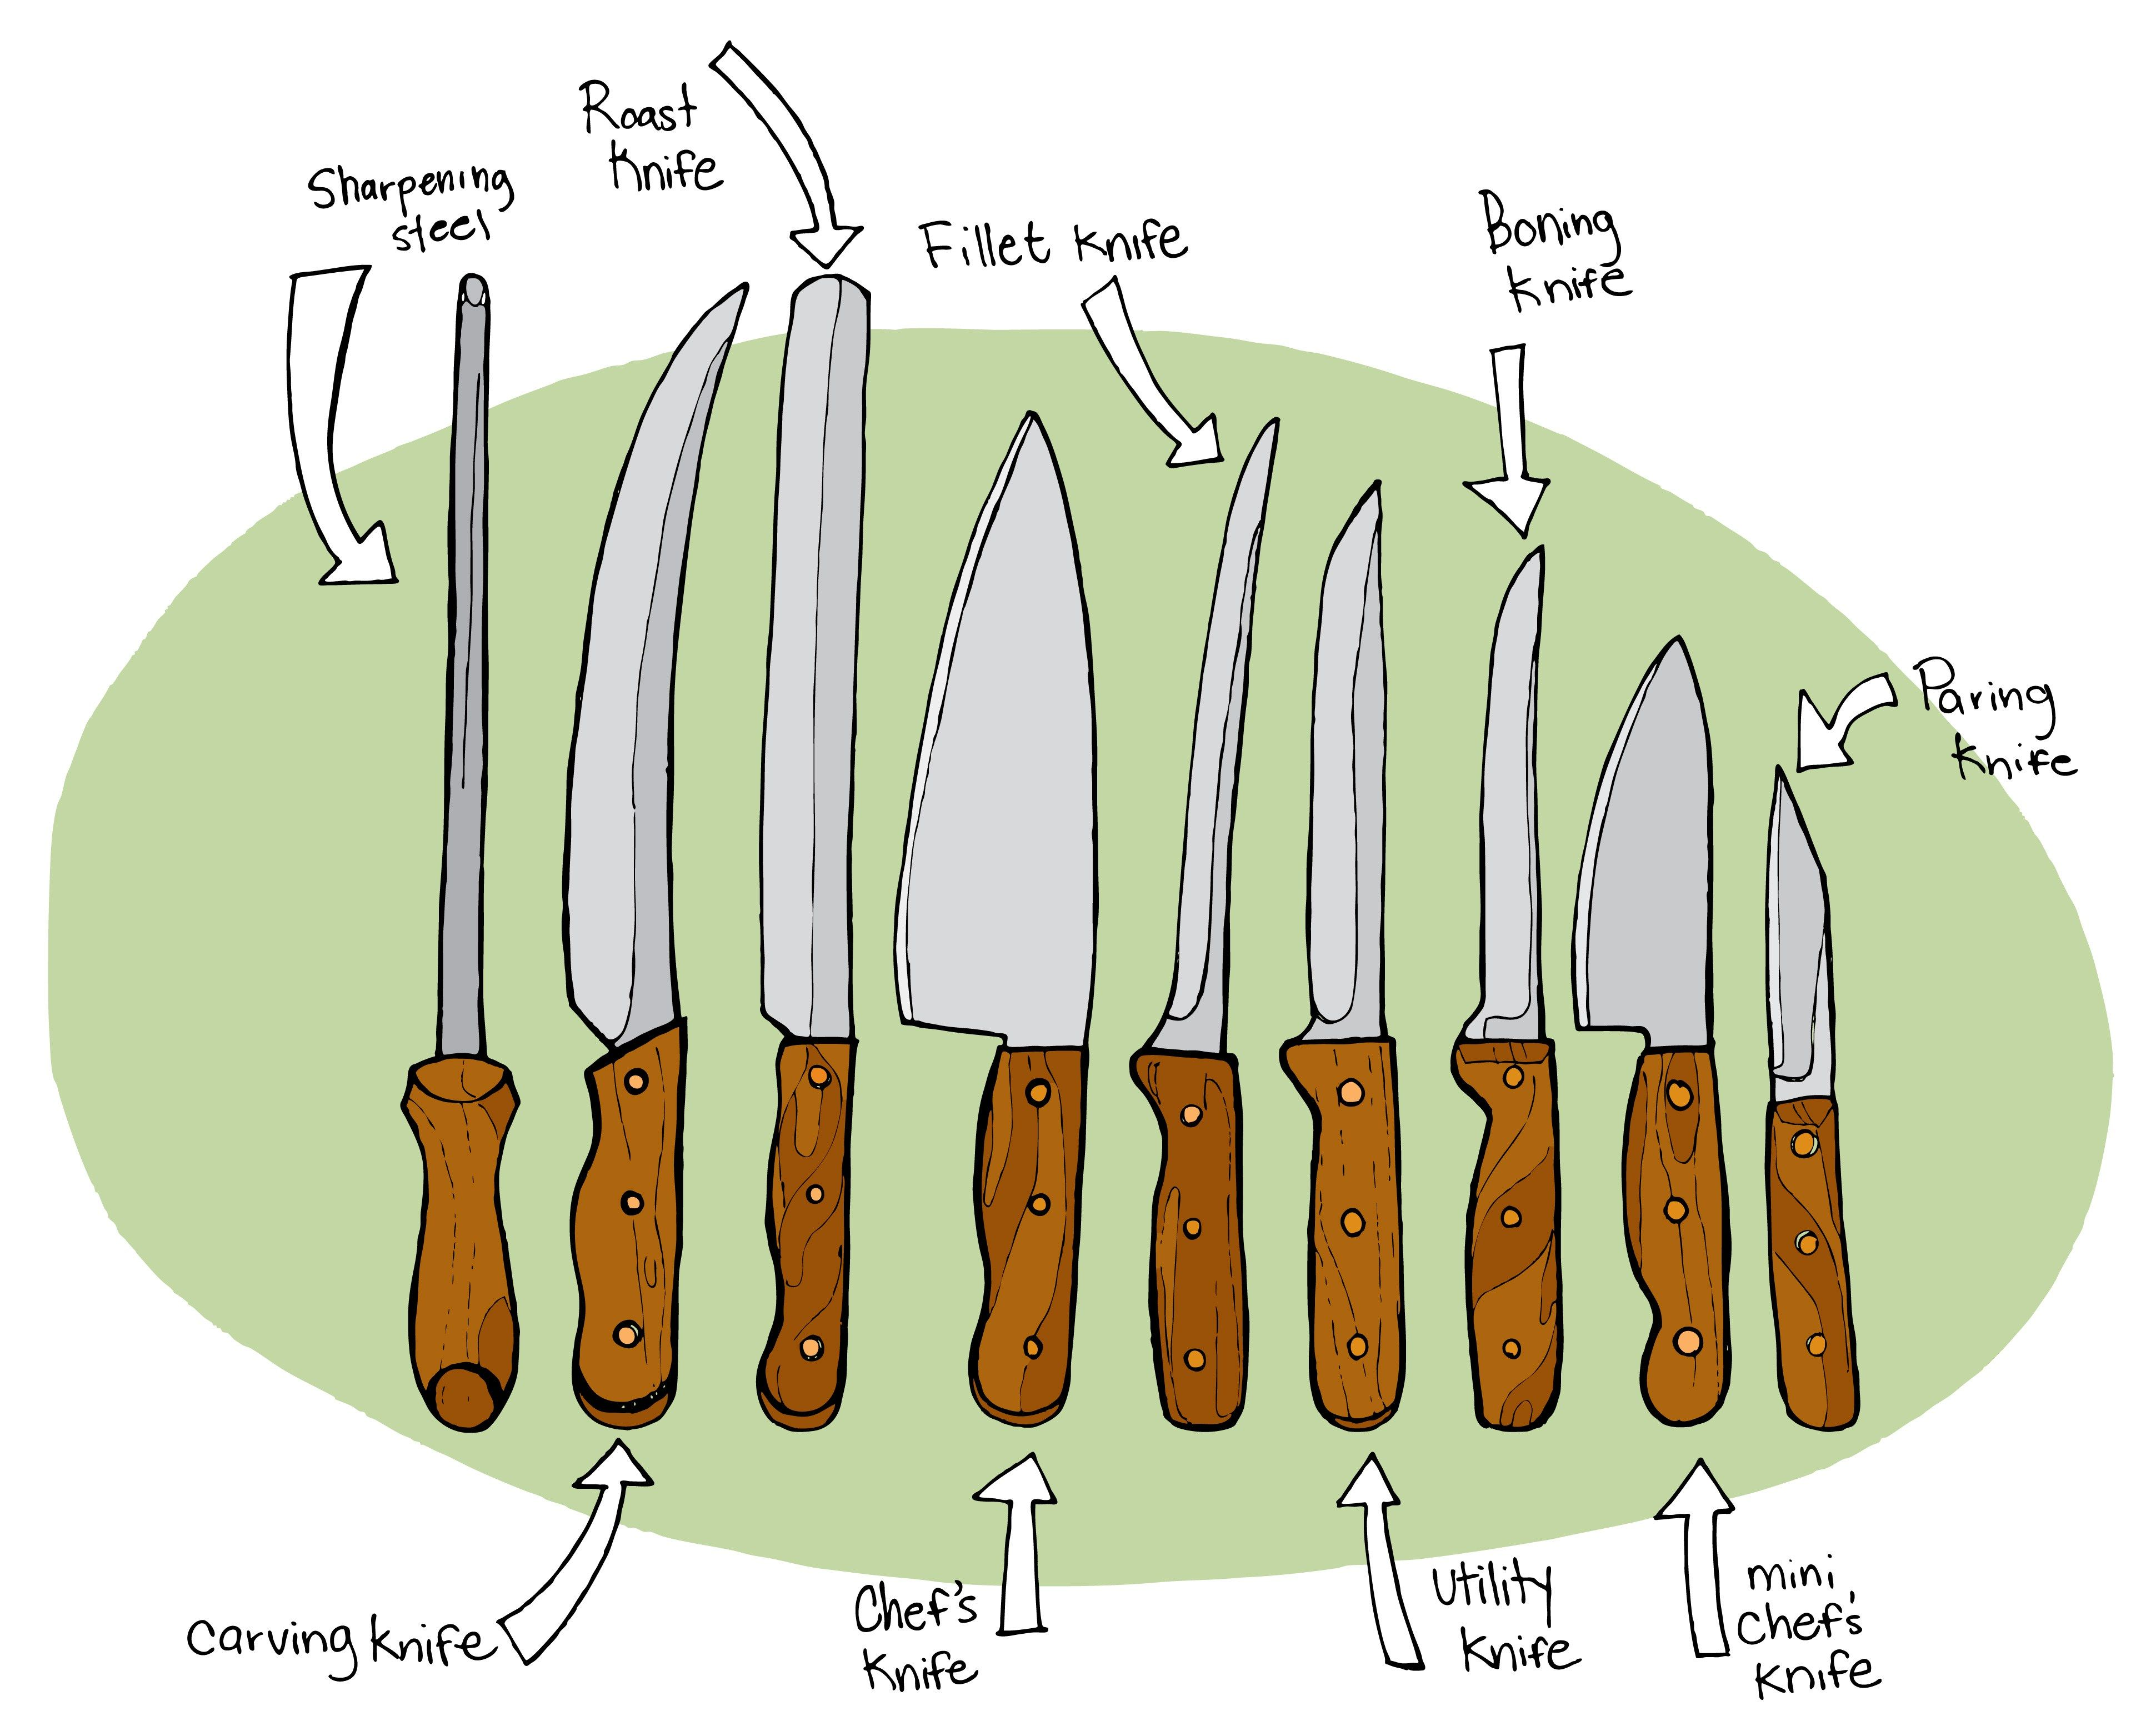 carving knife largest curved knife carving knife kitchen devils carving knife inches kitchen devils